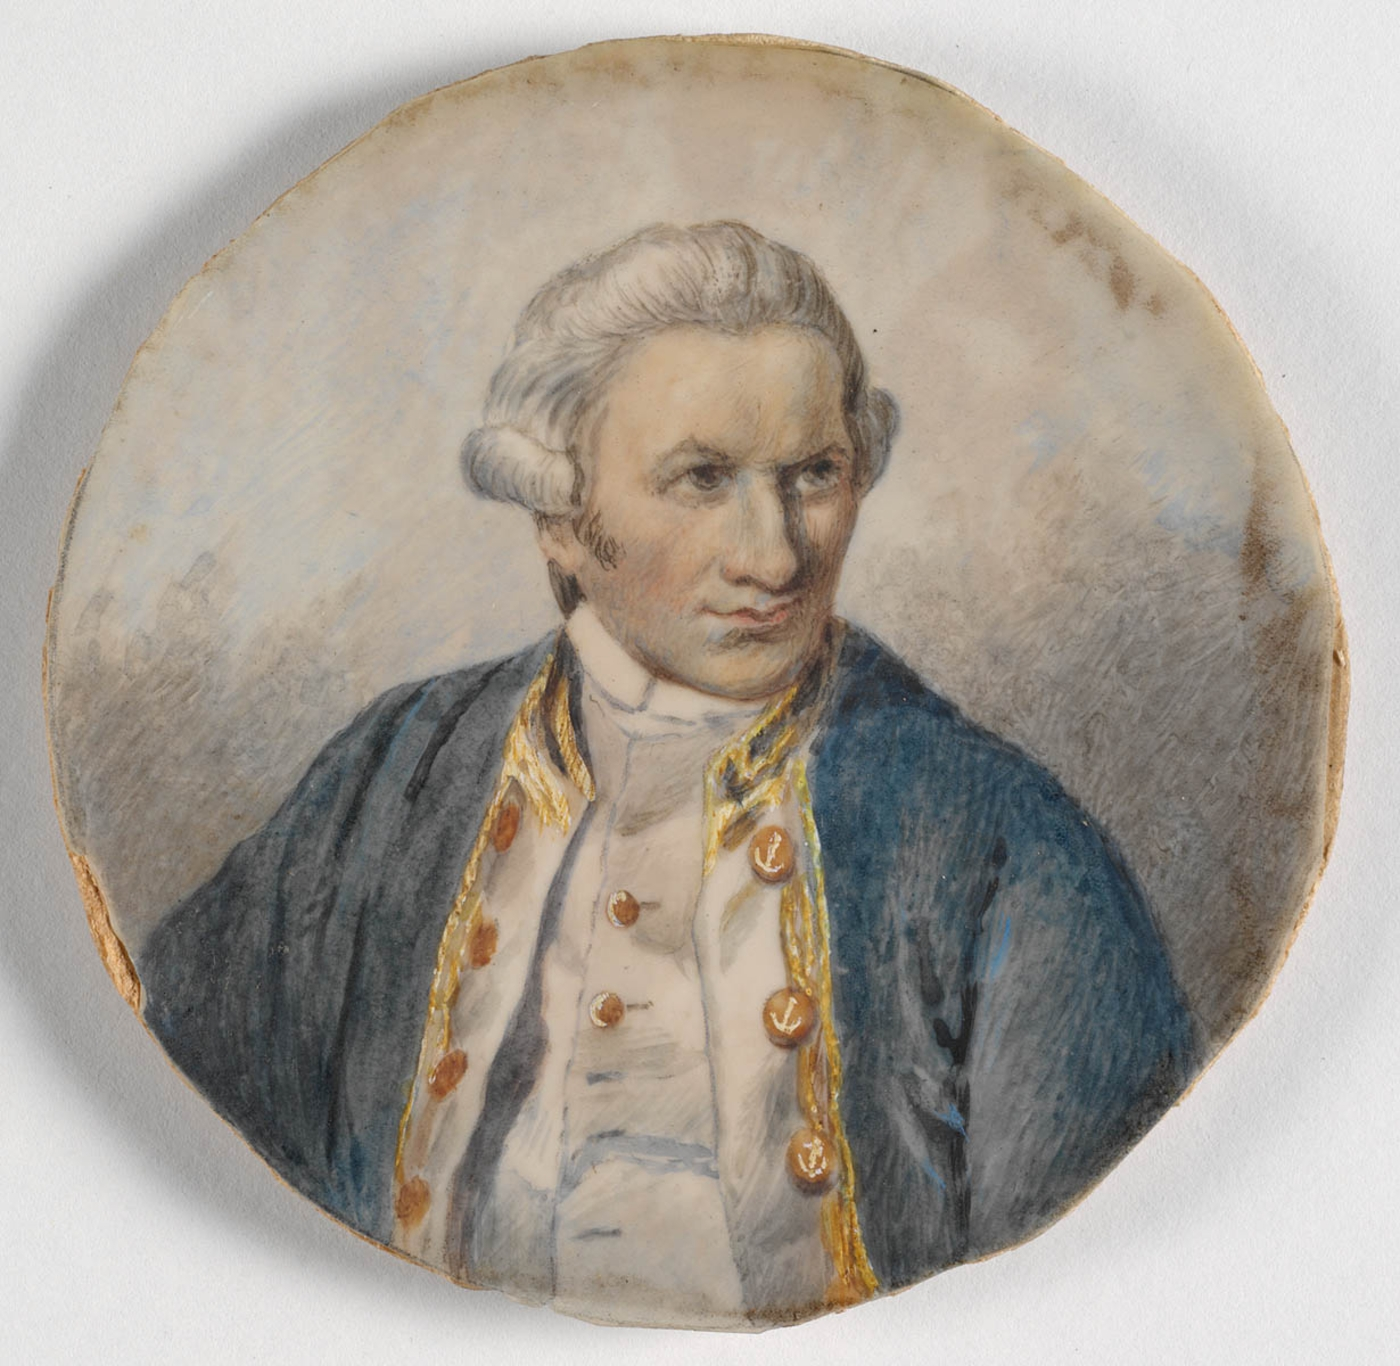 Watercolour portrait of Captain James Cook